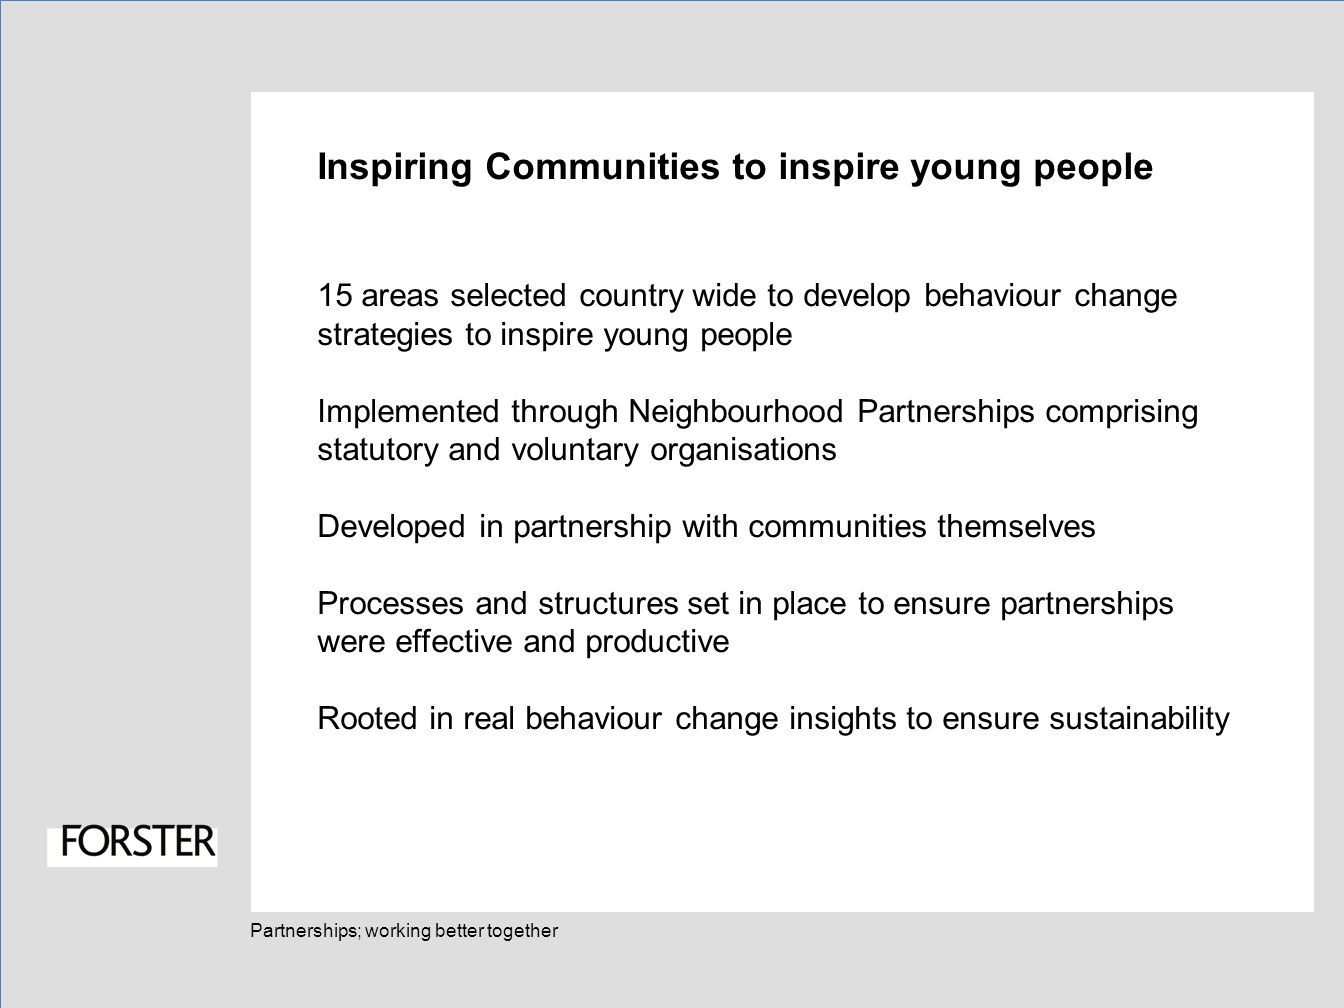 Partnerships; working better together Inspiring Communities to inspire young people 15 areas selected country wide to develop behaviour change strategies to inspire young people Implemented through Neighbourhood Partnerships comprising statutory and voluntary organisations Developed in partnership with communities themselves Processes and structures set in place to ensure partnerships were effective and productive Rooted in real behaviour change insights to ensure sustainability